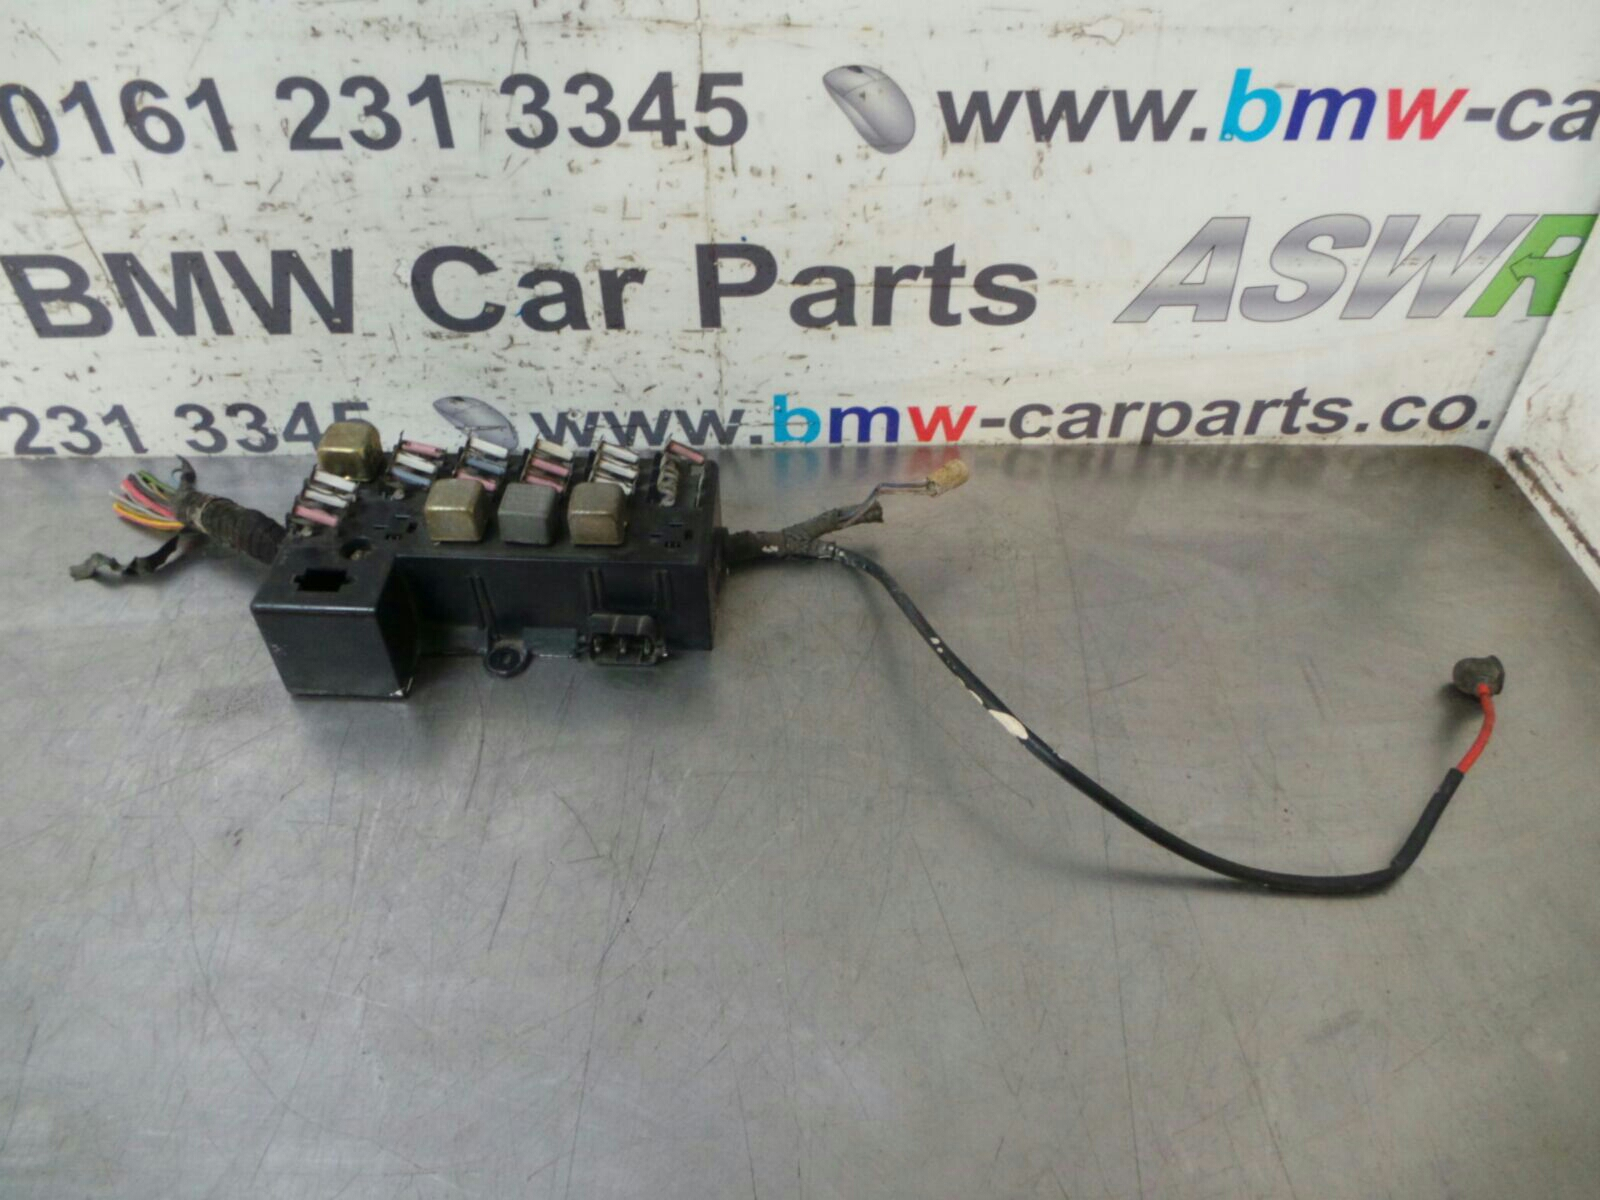 Bmw E21 3 Series Fuse Box 61131369605 Breaking For Used And Spare BMW 328I  Fuse Box Location Bmw Fuse Box S 3